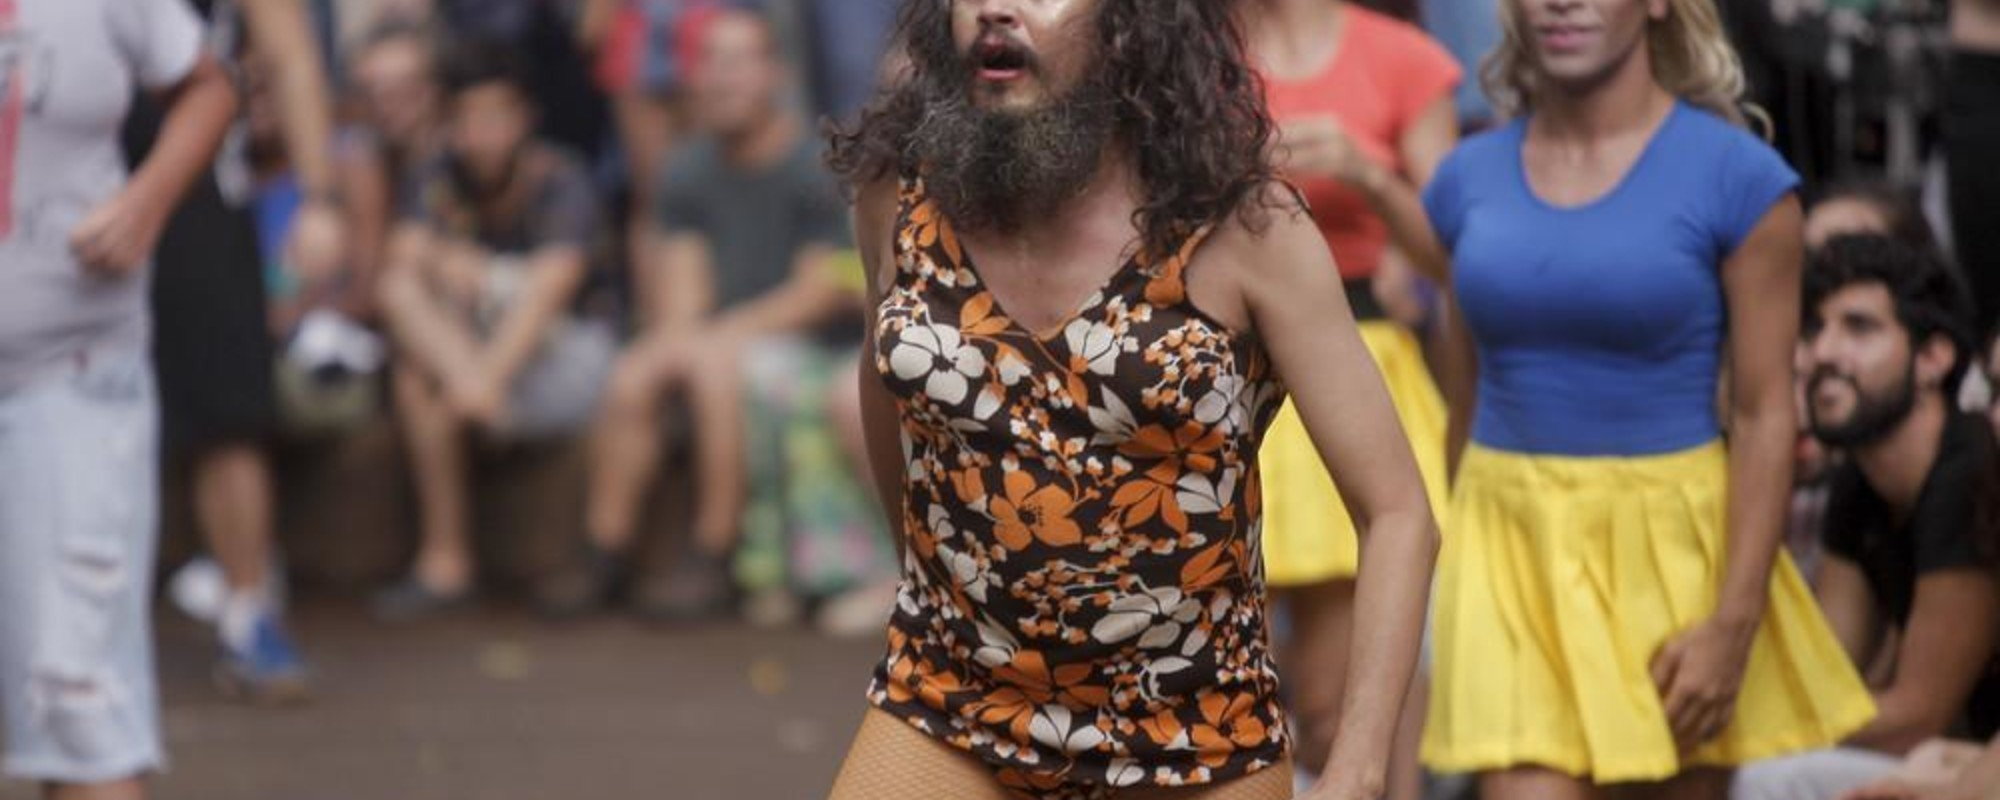 Photos of Brazilians Playing Dodgeball in Drag